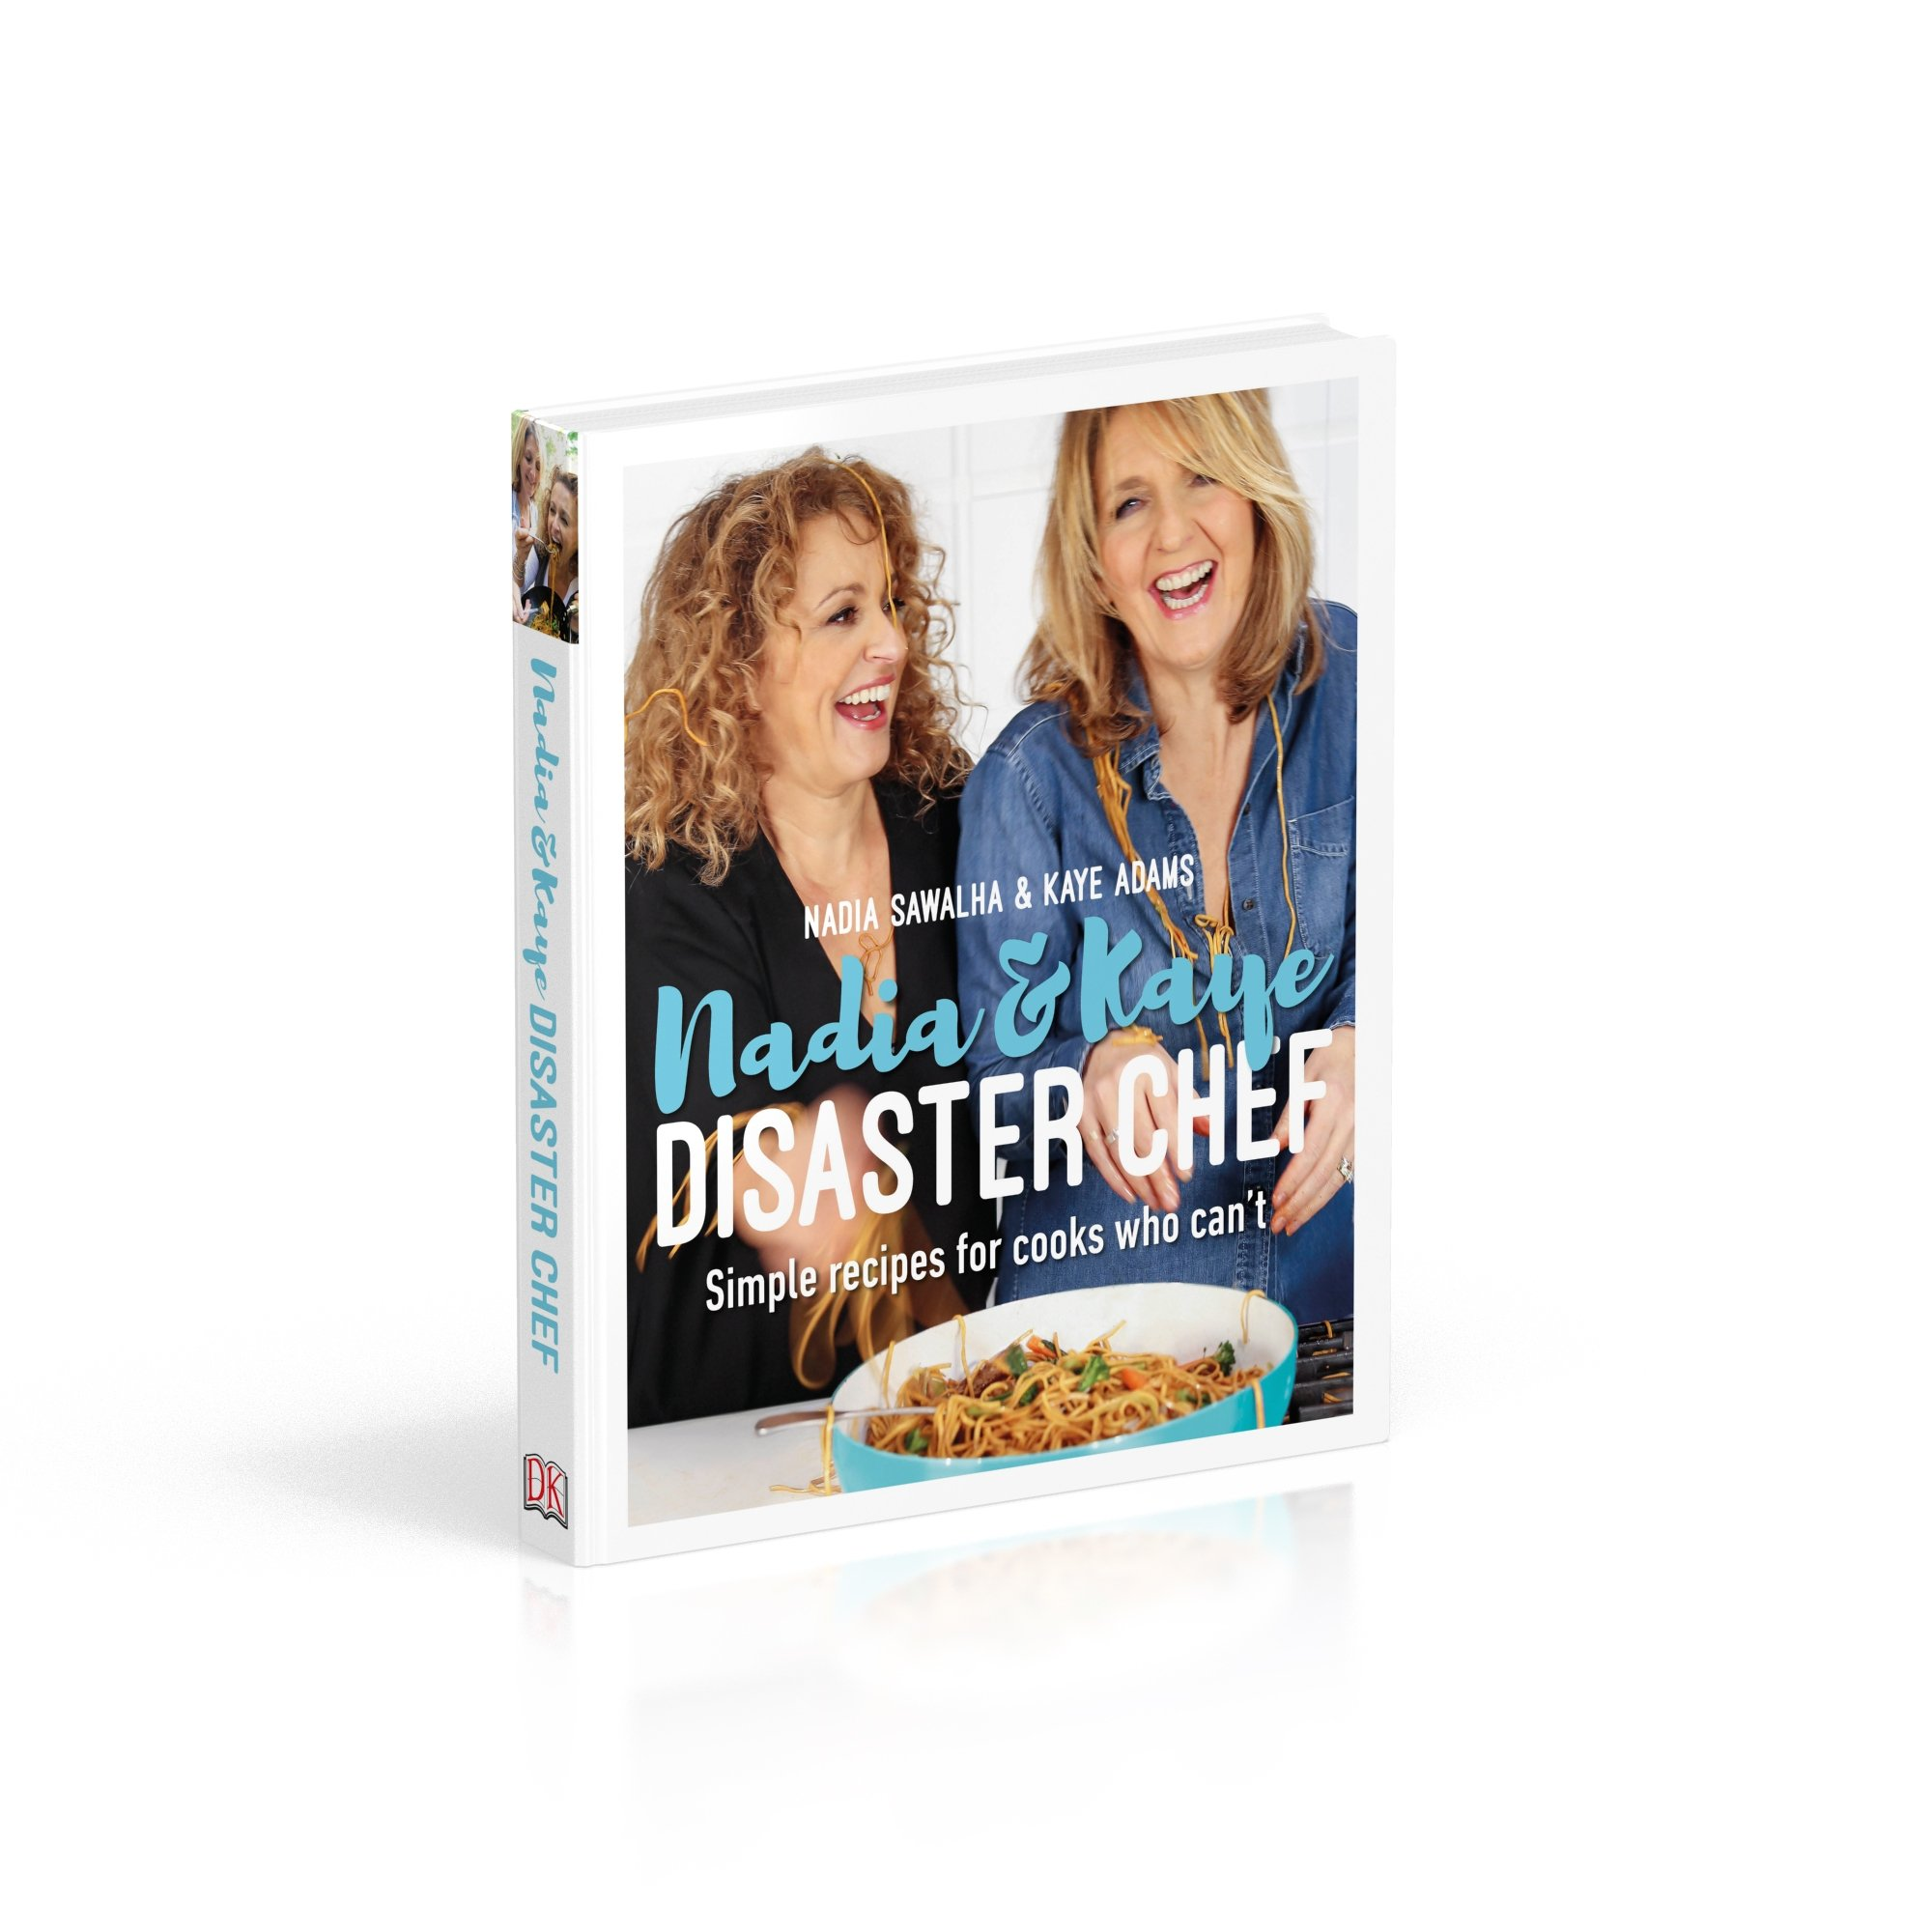 Disaster Chef' Kaye Adams Will Learn Nadia Sawalha's Recipes In Brand New Cookbook